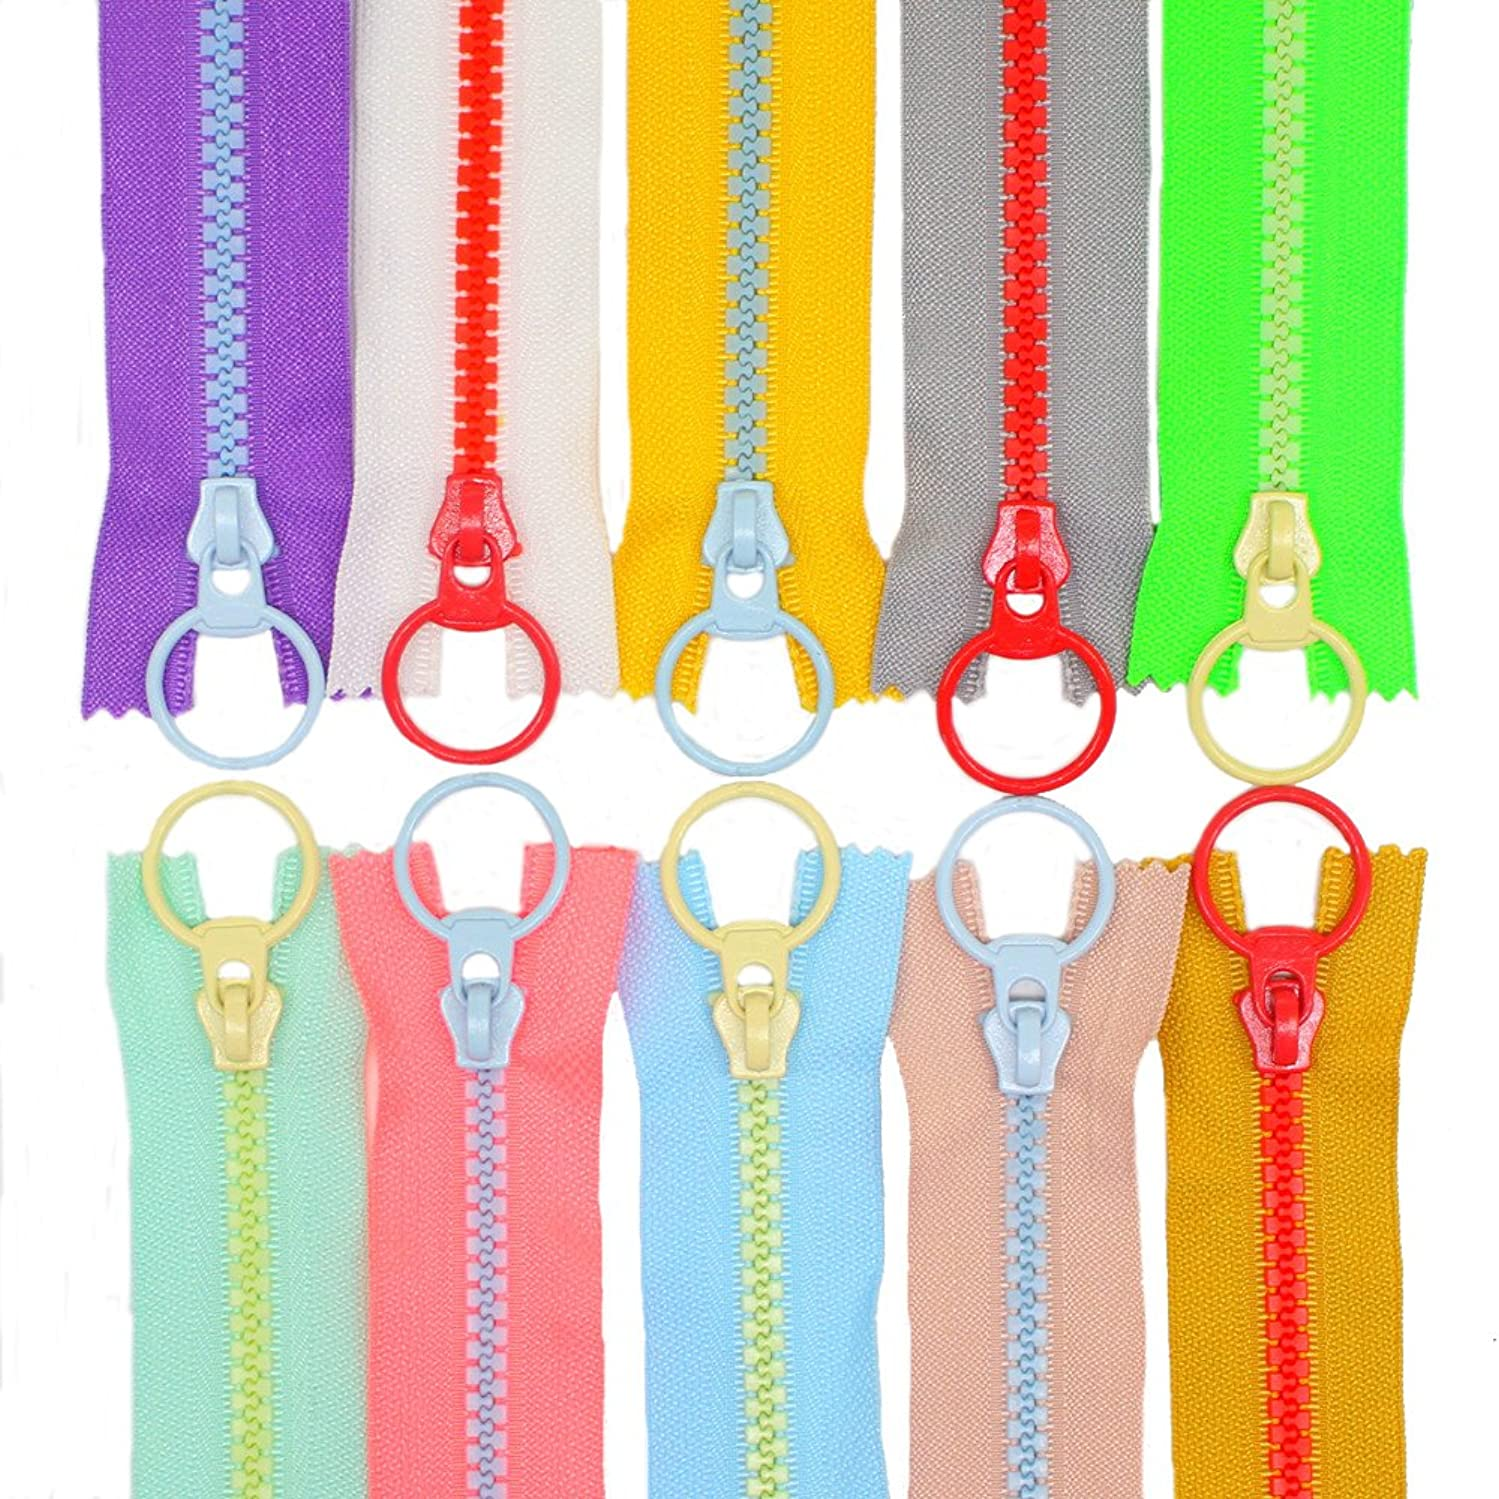 YaHoGa 10PCS 8 Inch (20CM) #5 Plastic Zippers with Lifting Ring Pull Close End Vislon Zippers for DIY Sewing Craft Bags Garment 8